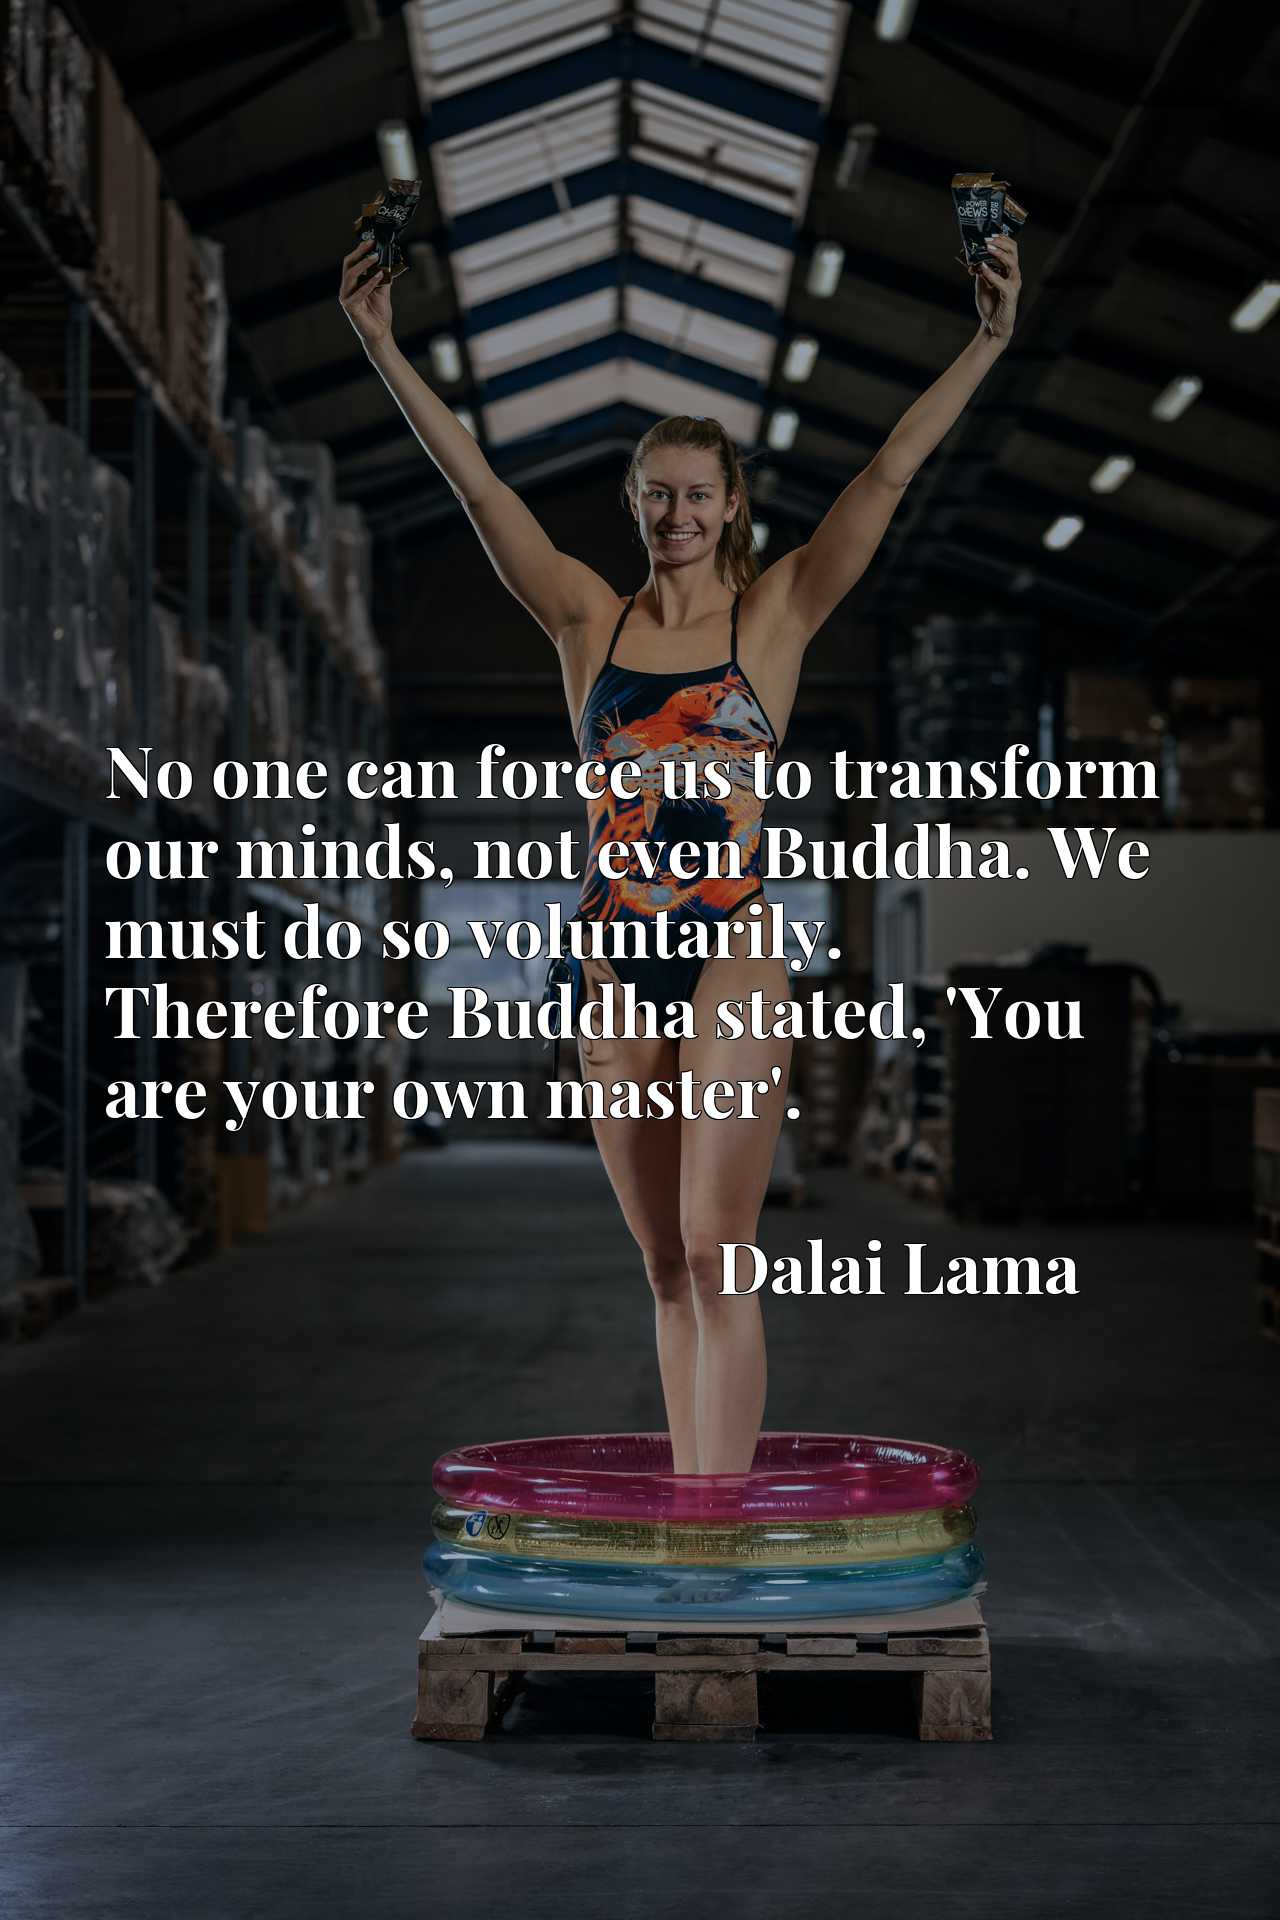 No one can force us to transform our minds, not even Buddha. We must do so voluntarily. Therefore Buddha stated, 'You are your own master'.